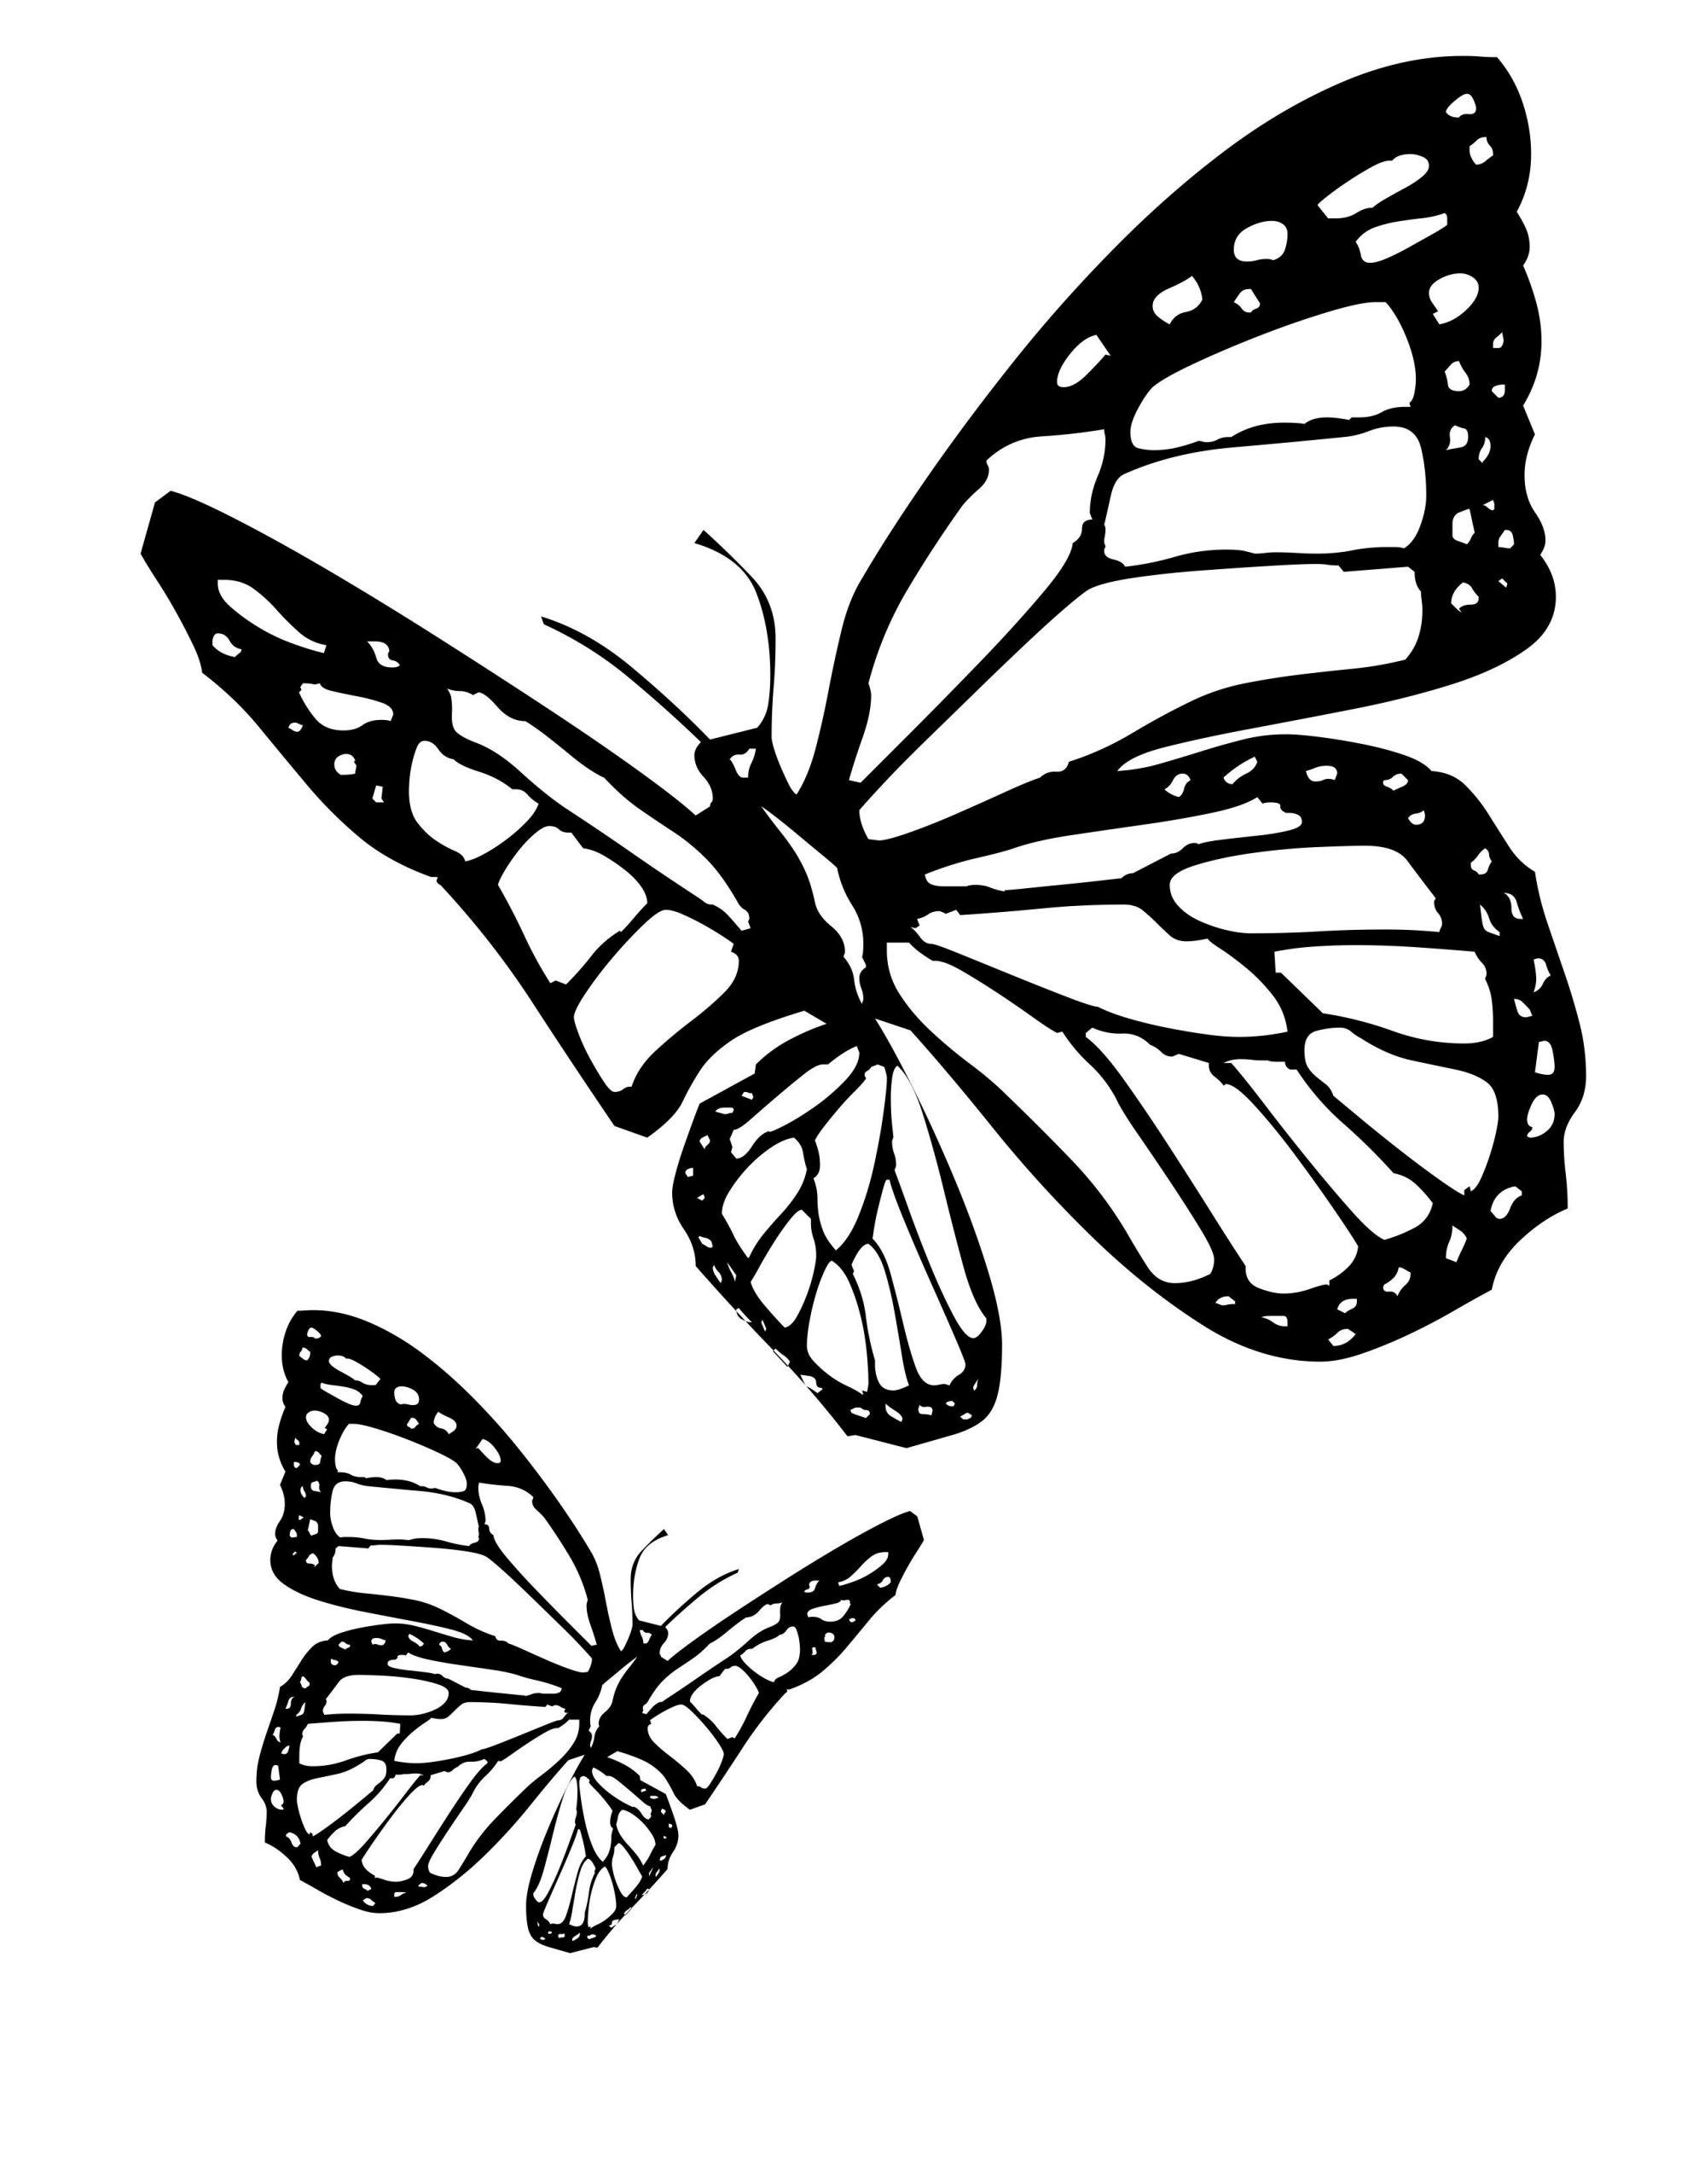 Hungry Caterpillar Butterfly Coloring Page Youngandtae Com In 2020 Butterfly Coloring Page Butterfly Tattoo Stencil Butterfly Outline